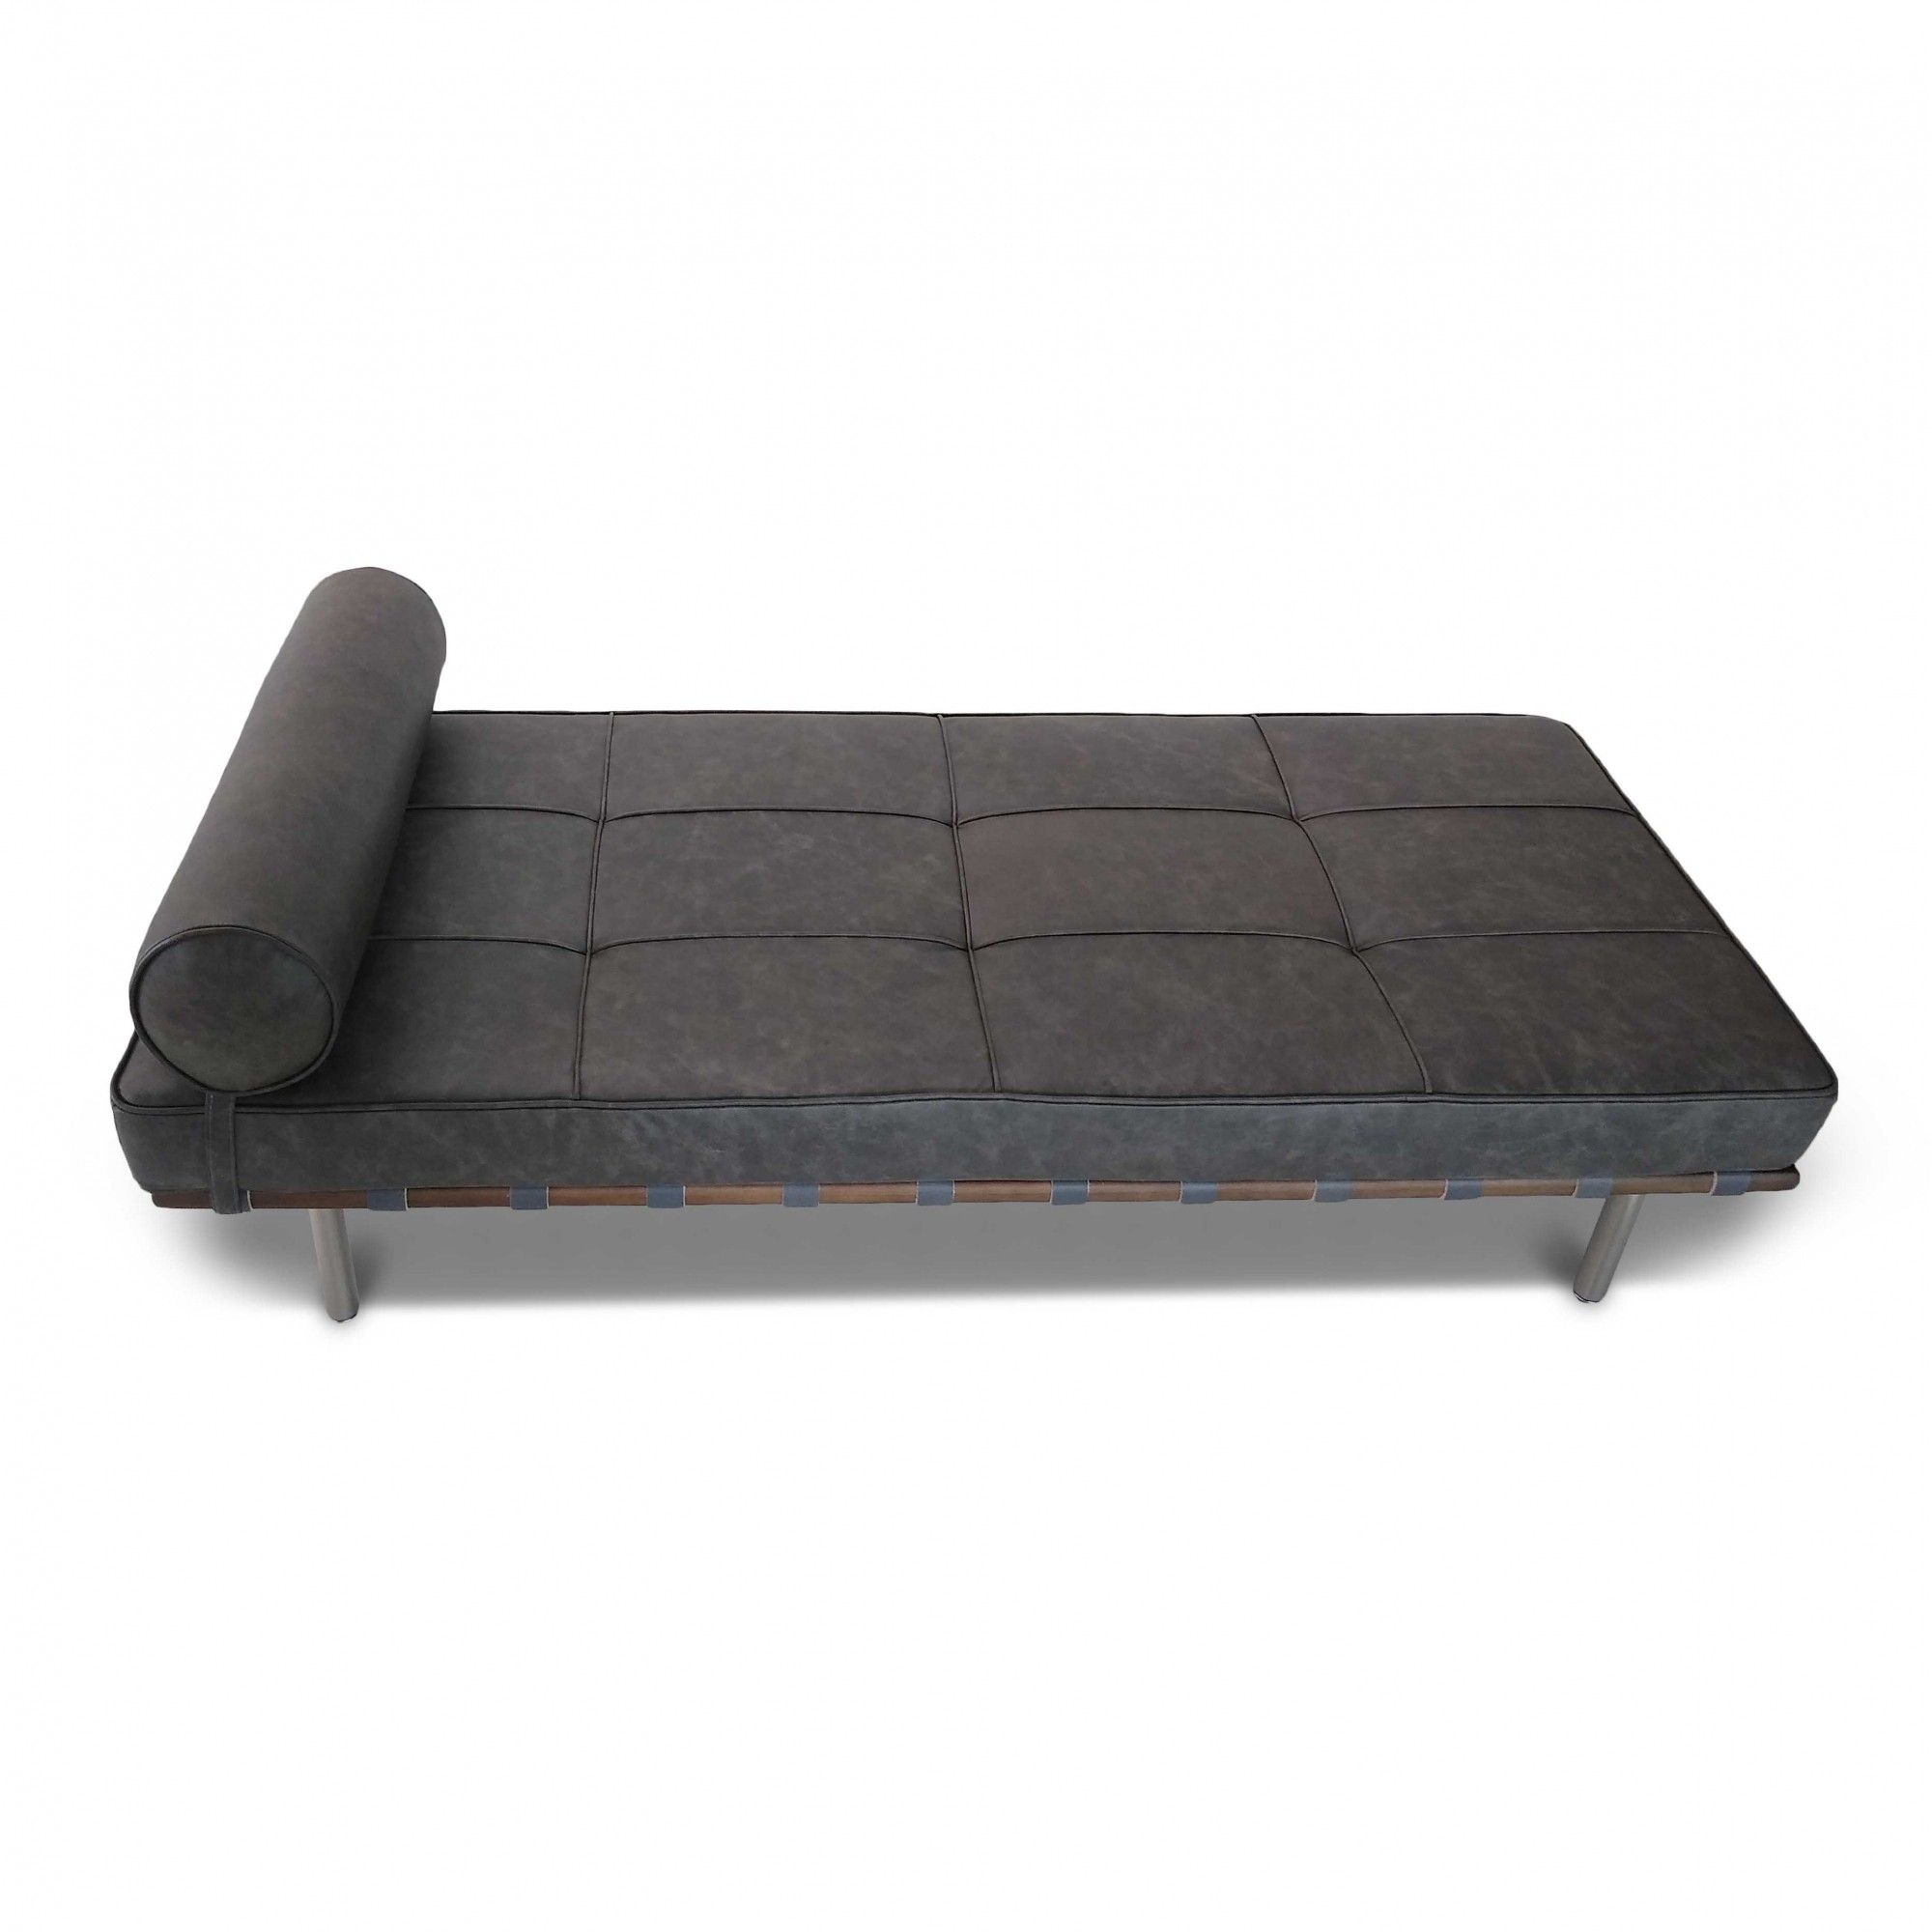 RECAMIER (COUCH) BARCELONA